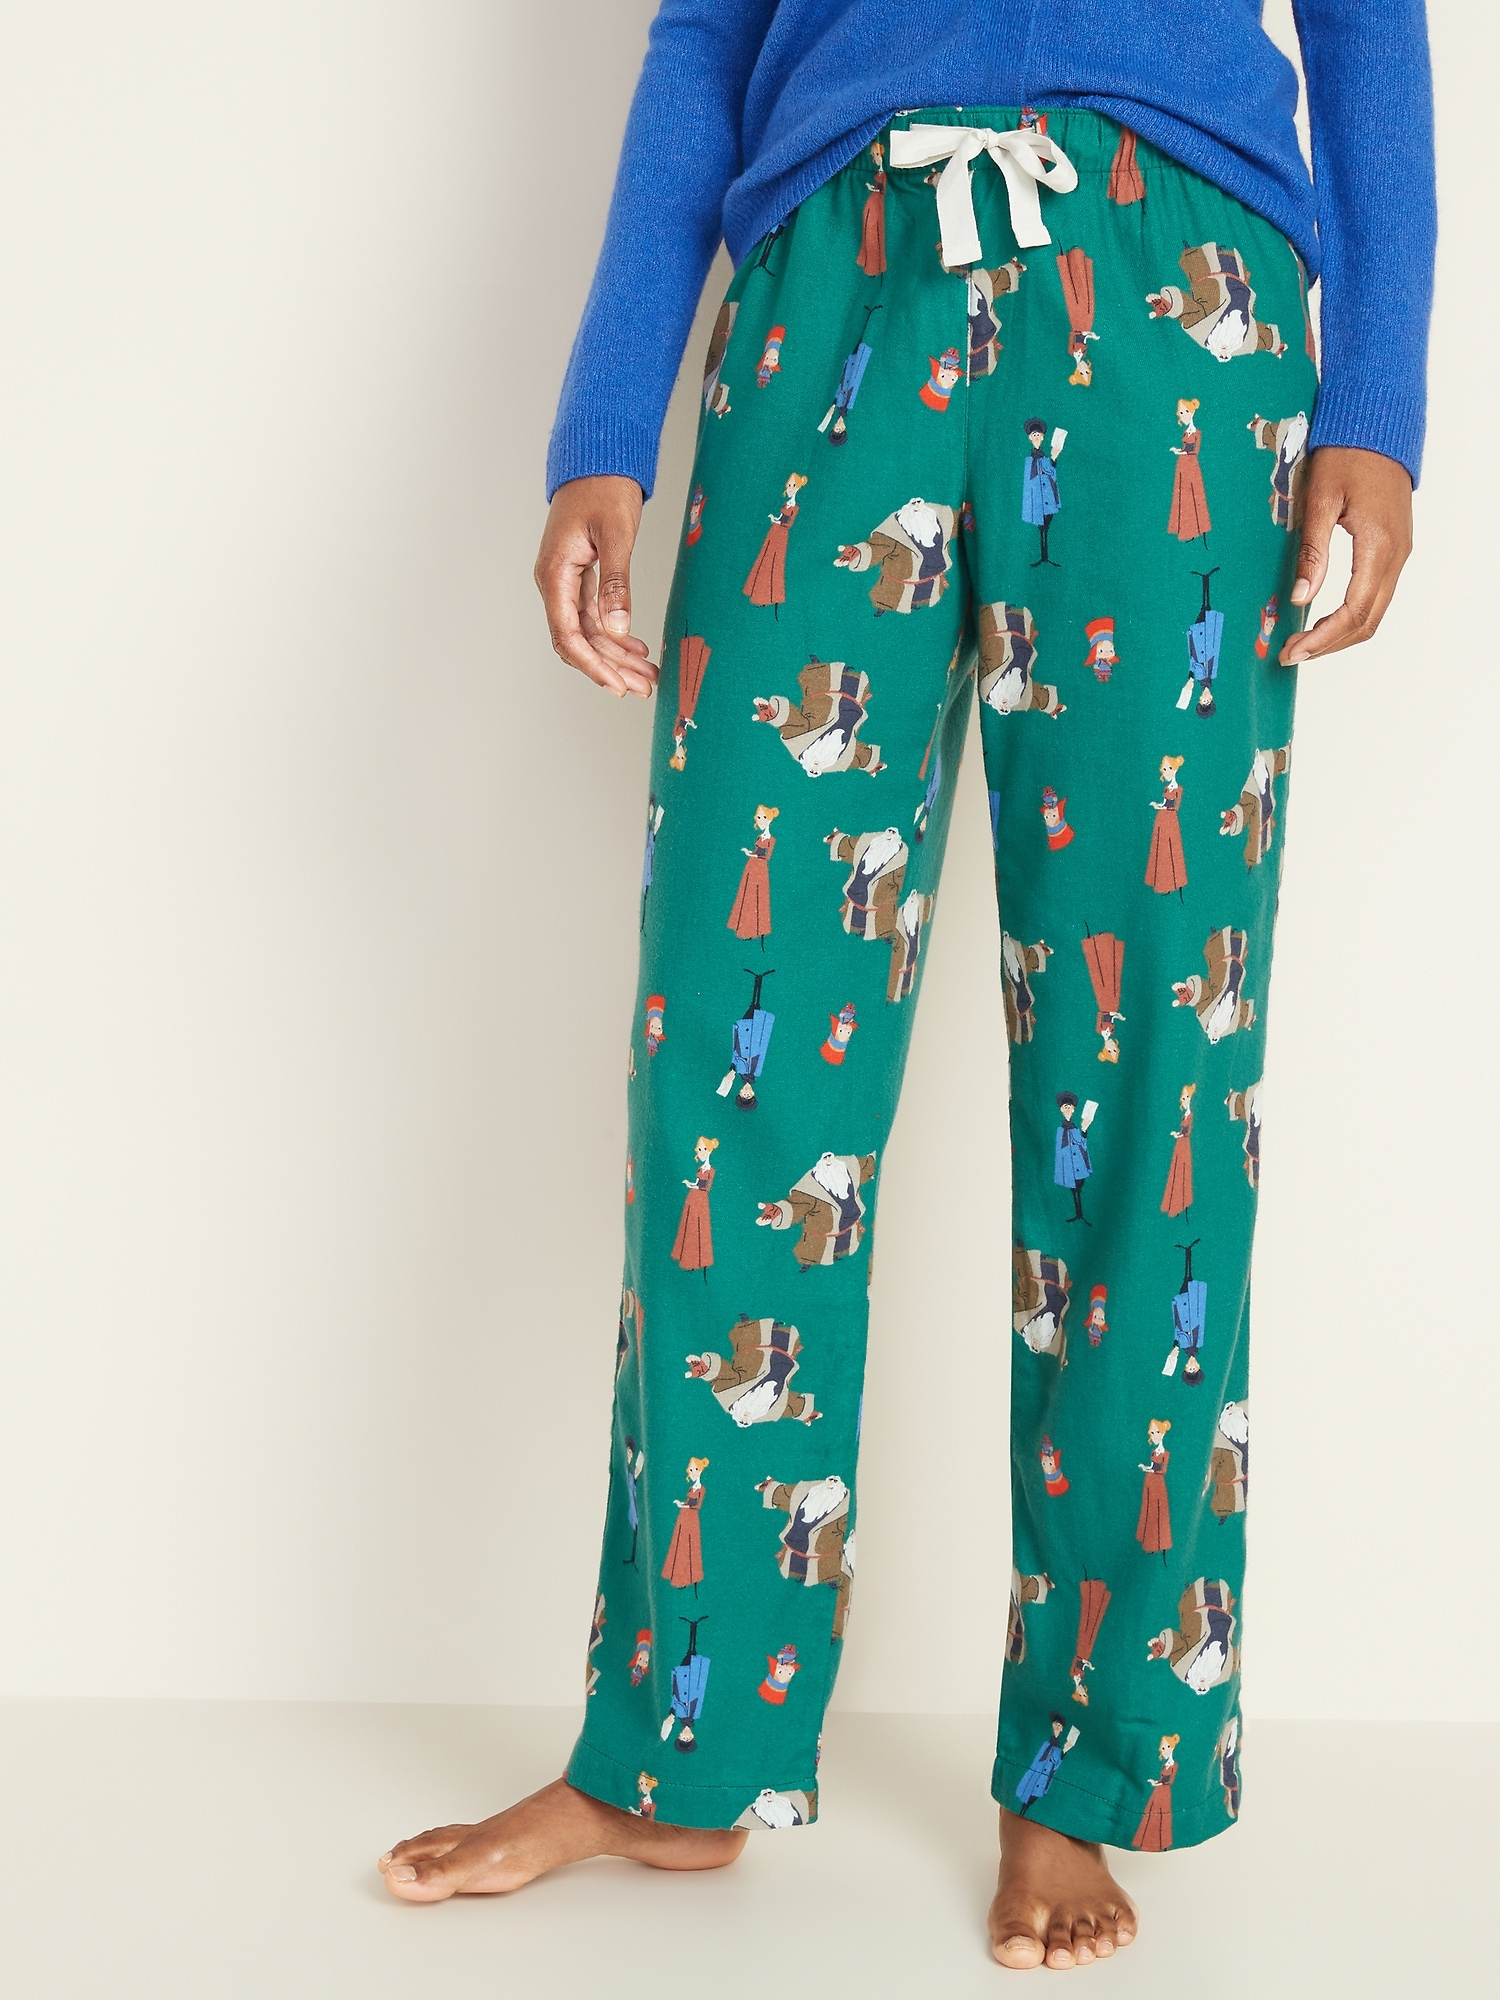 Klaus™ X Old Navy Flannel Pajama Pants For Women by Old Navy